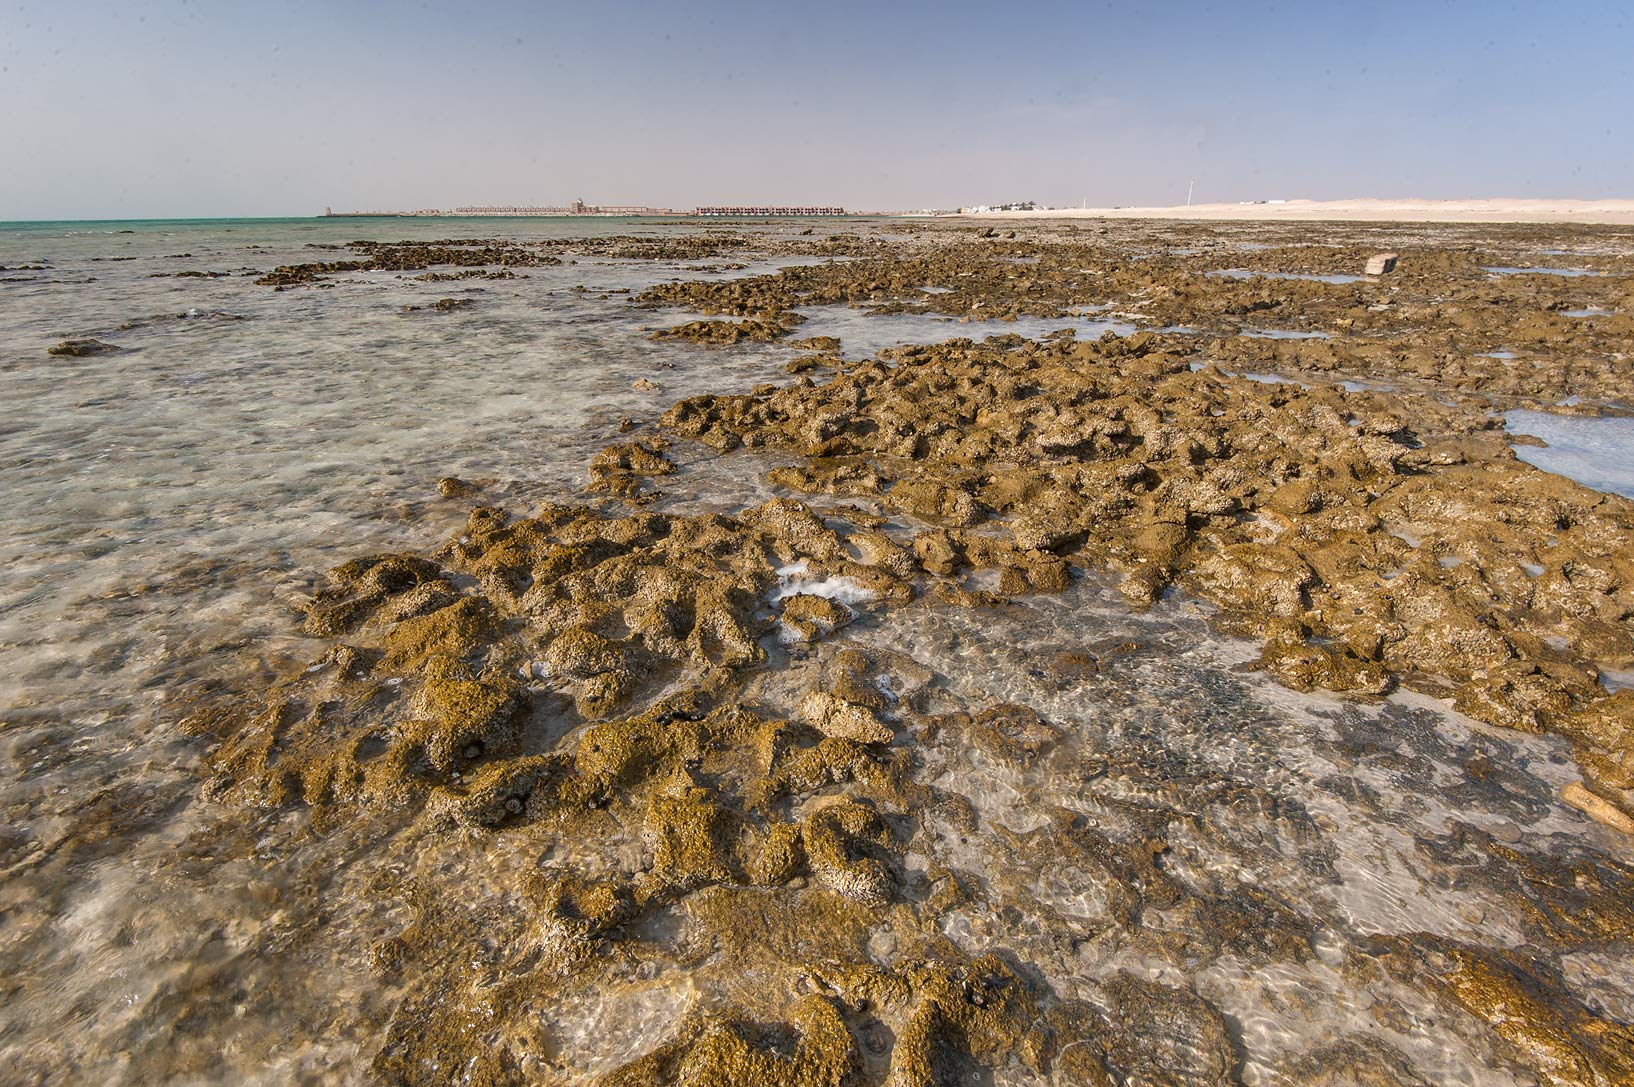 Beachrock near Al Ghariyah on north-eastern coast, Ash Shamal area. Qatar